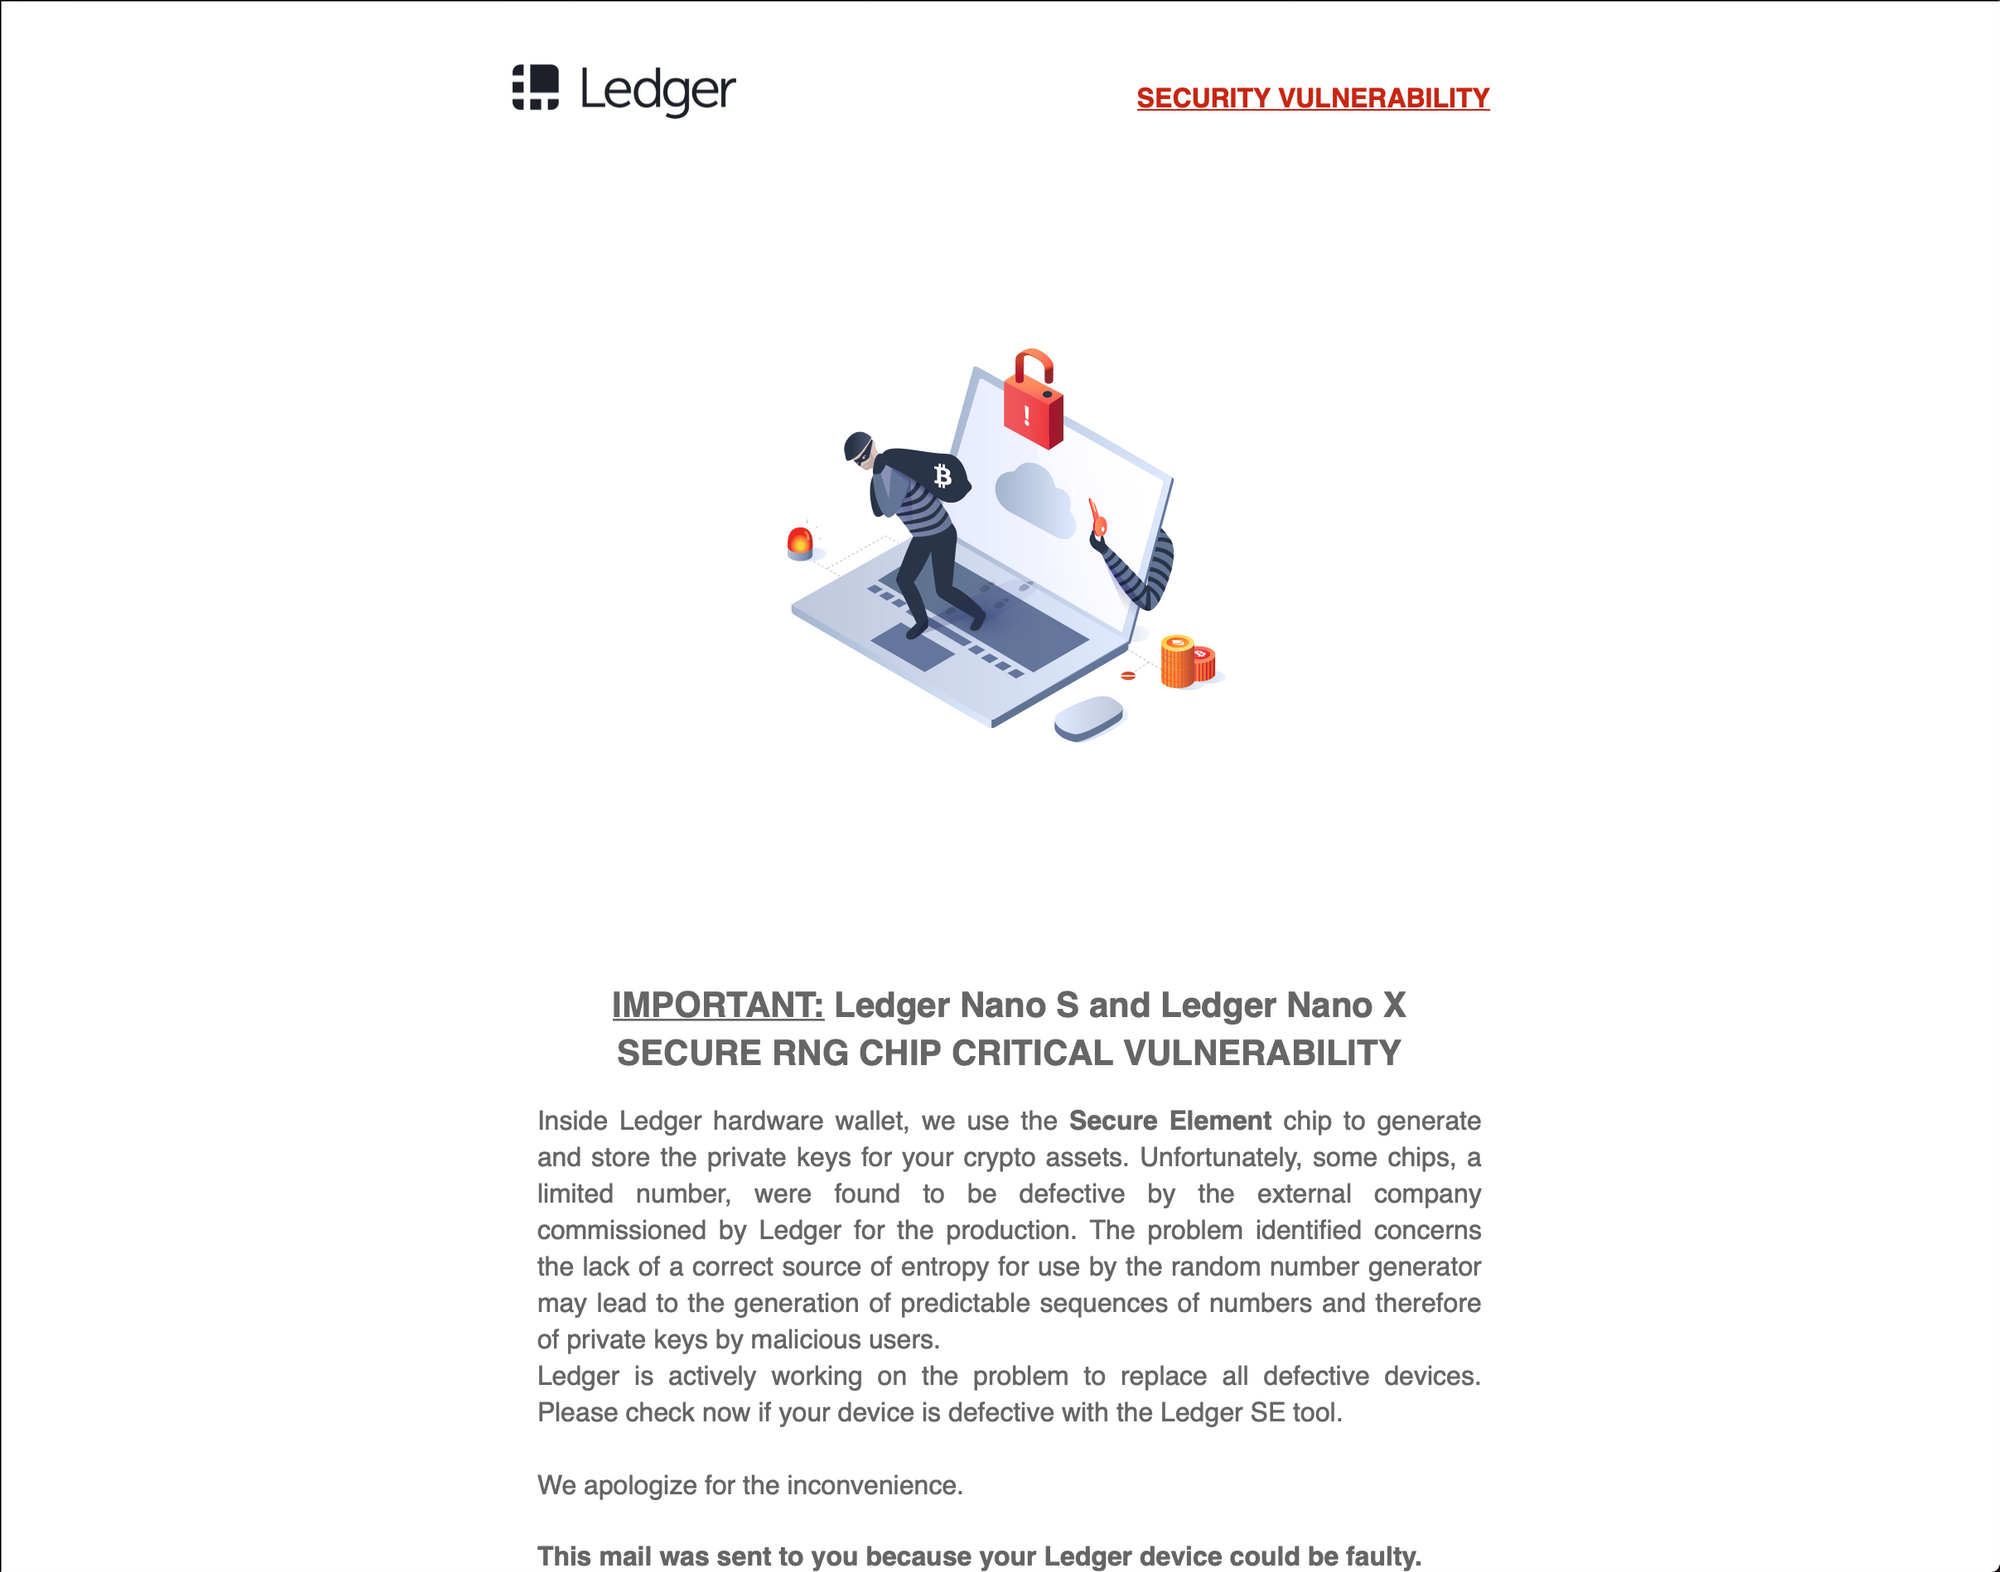 Beware of well executed Ledger phishing email